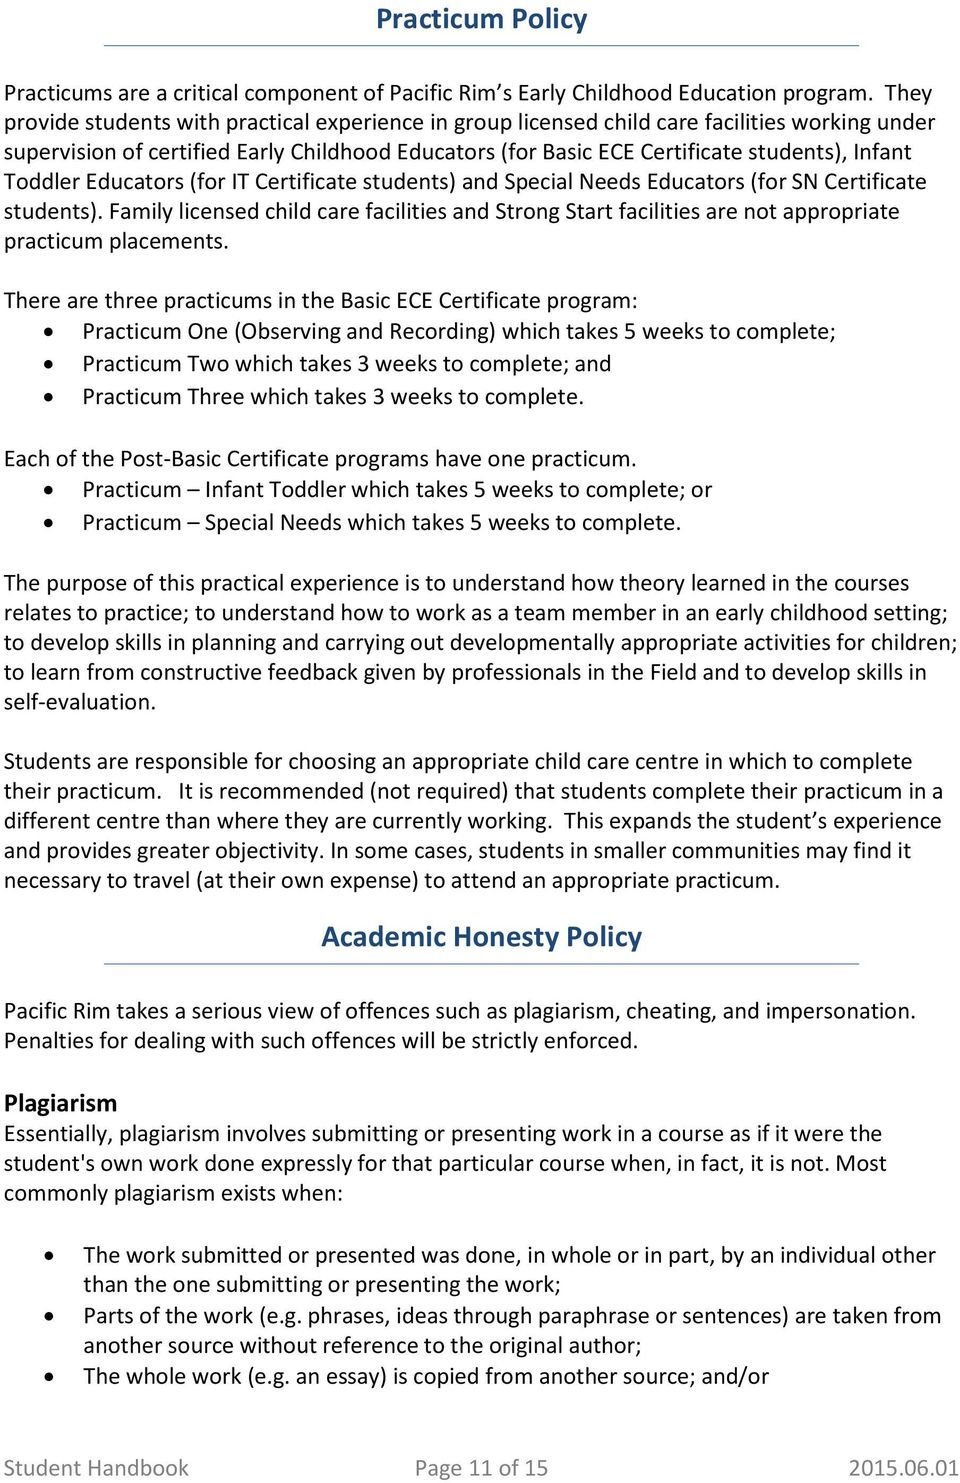 Student Handbook Information Package Pacific Rim Early Childhood